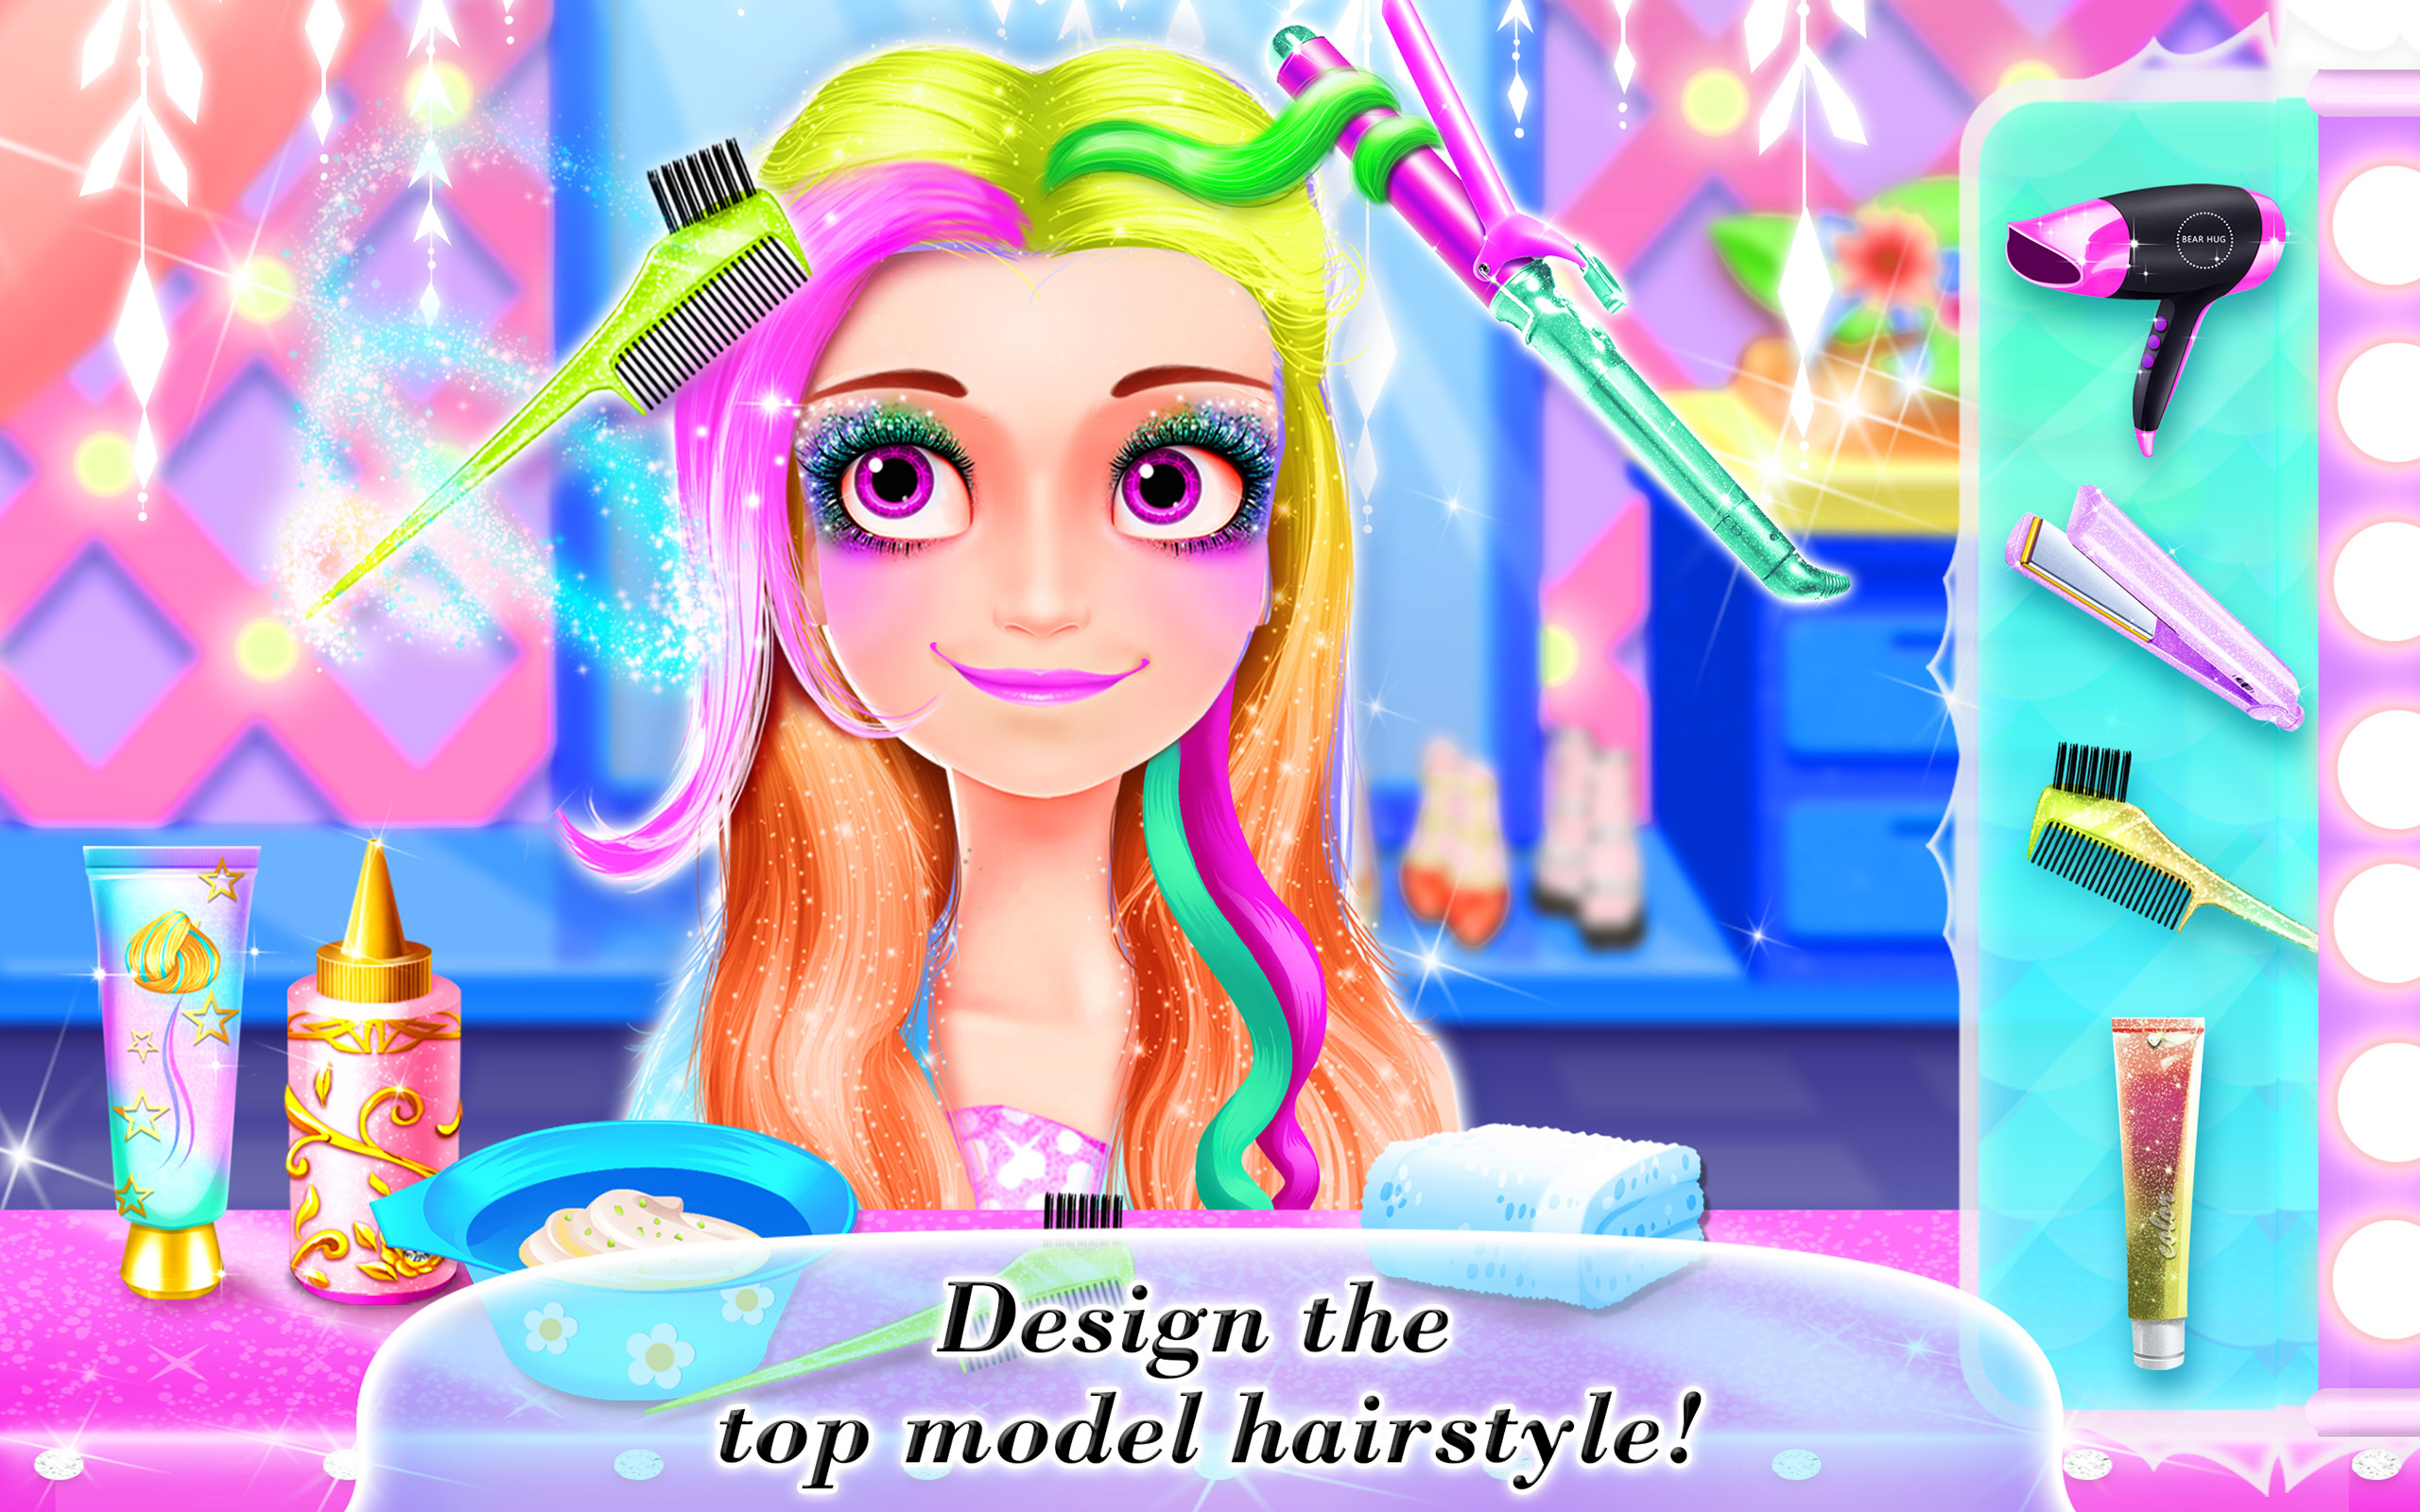 Amazon.com: Beauty Salon - Girls Games: Appstore for Android